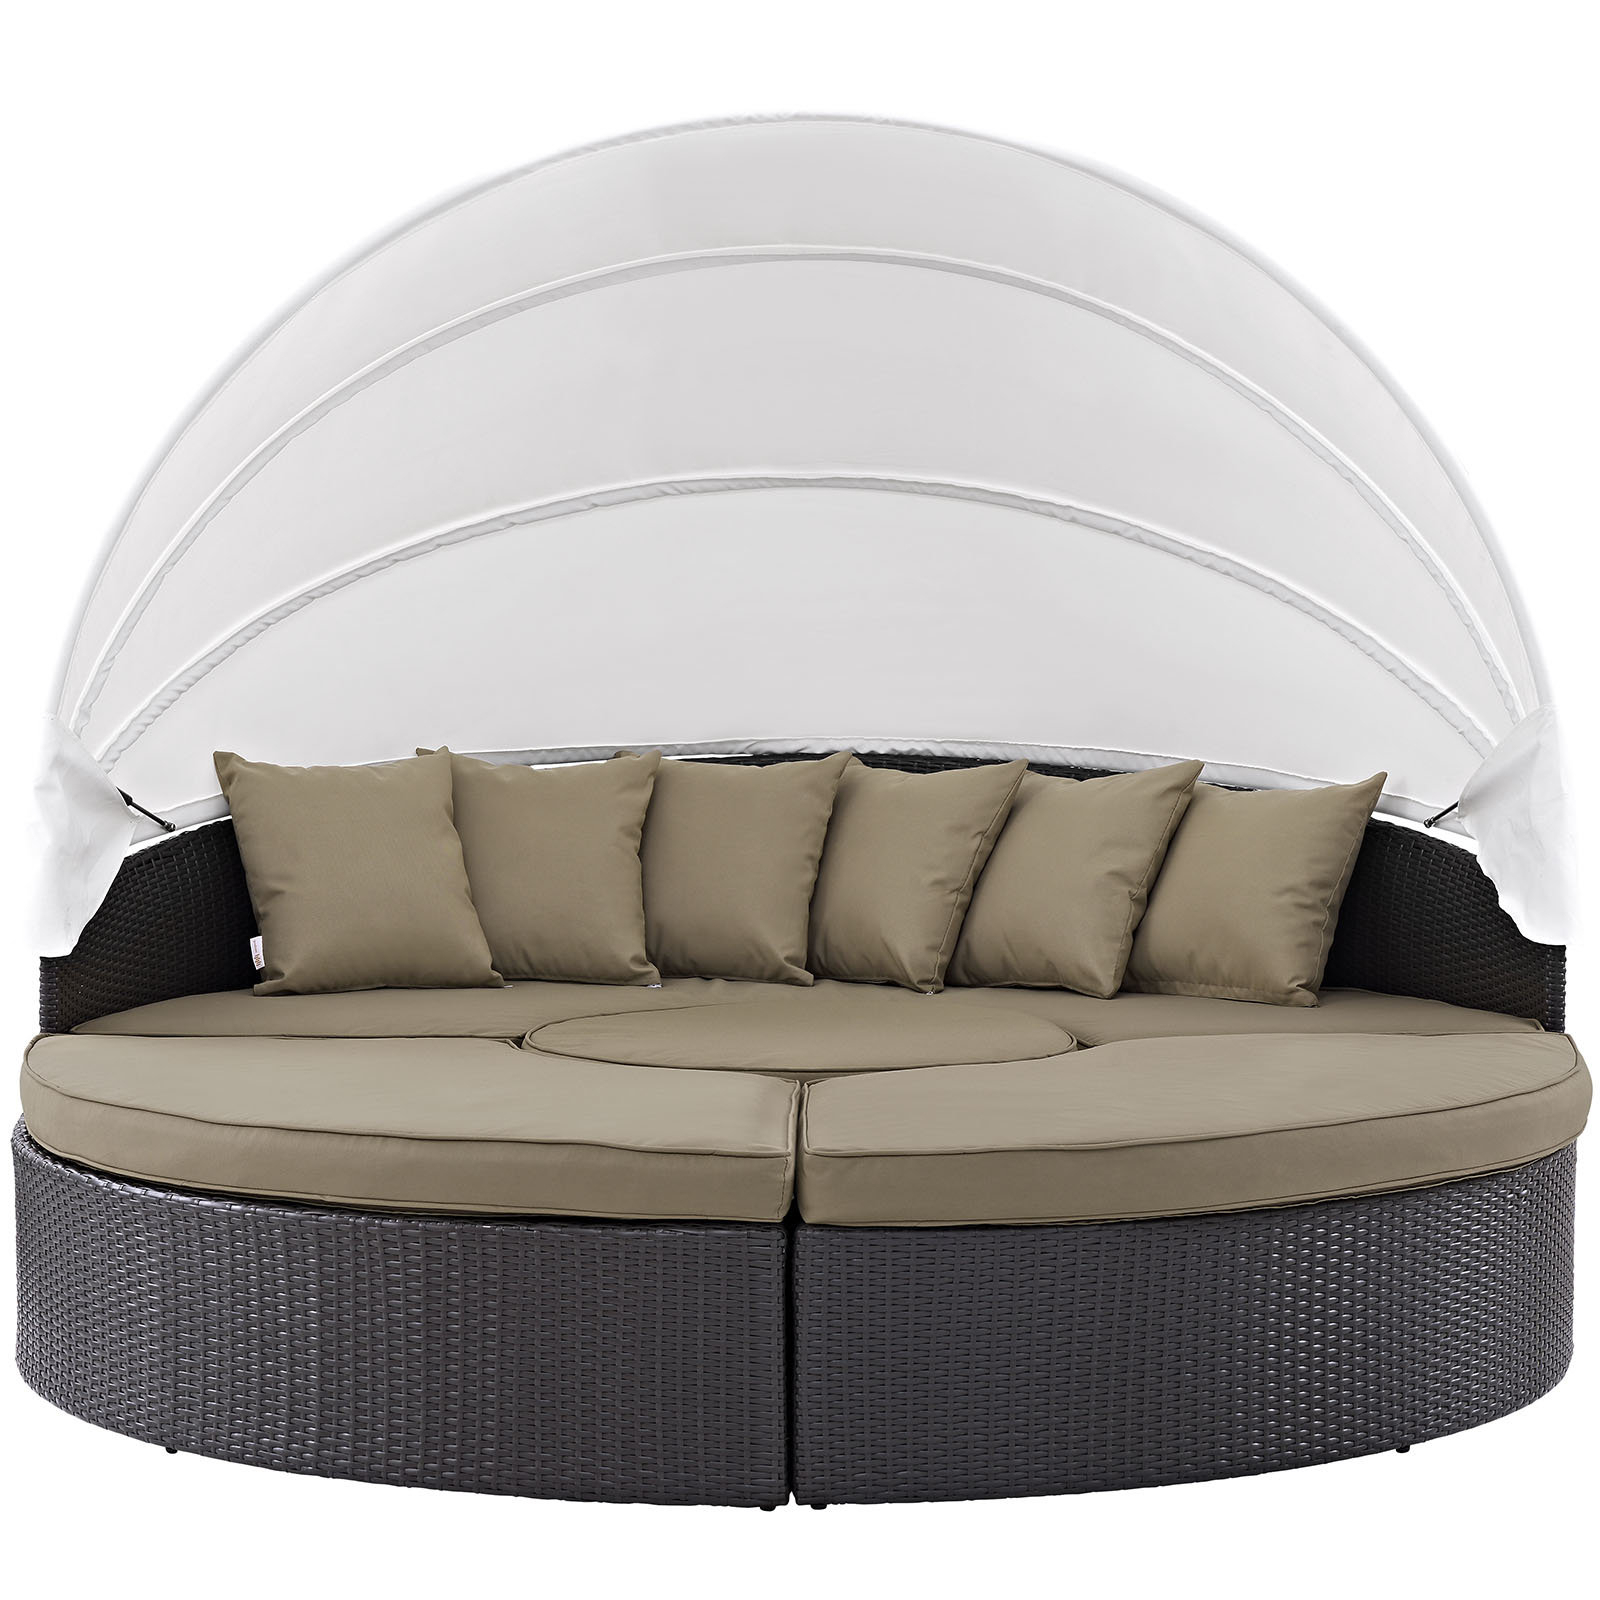 Latest Brentwood Patio Daybed With Cushions For Greening Outdoor Daybeds With Ottoman & Cushions (View 9 of 20)